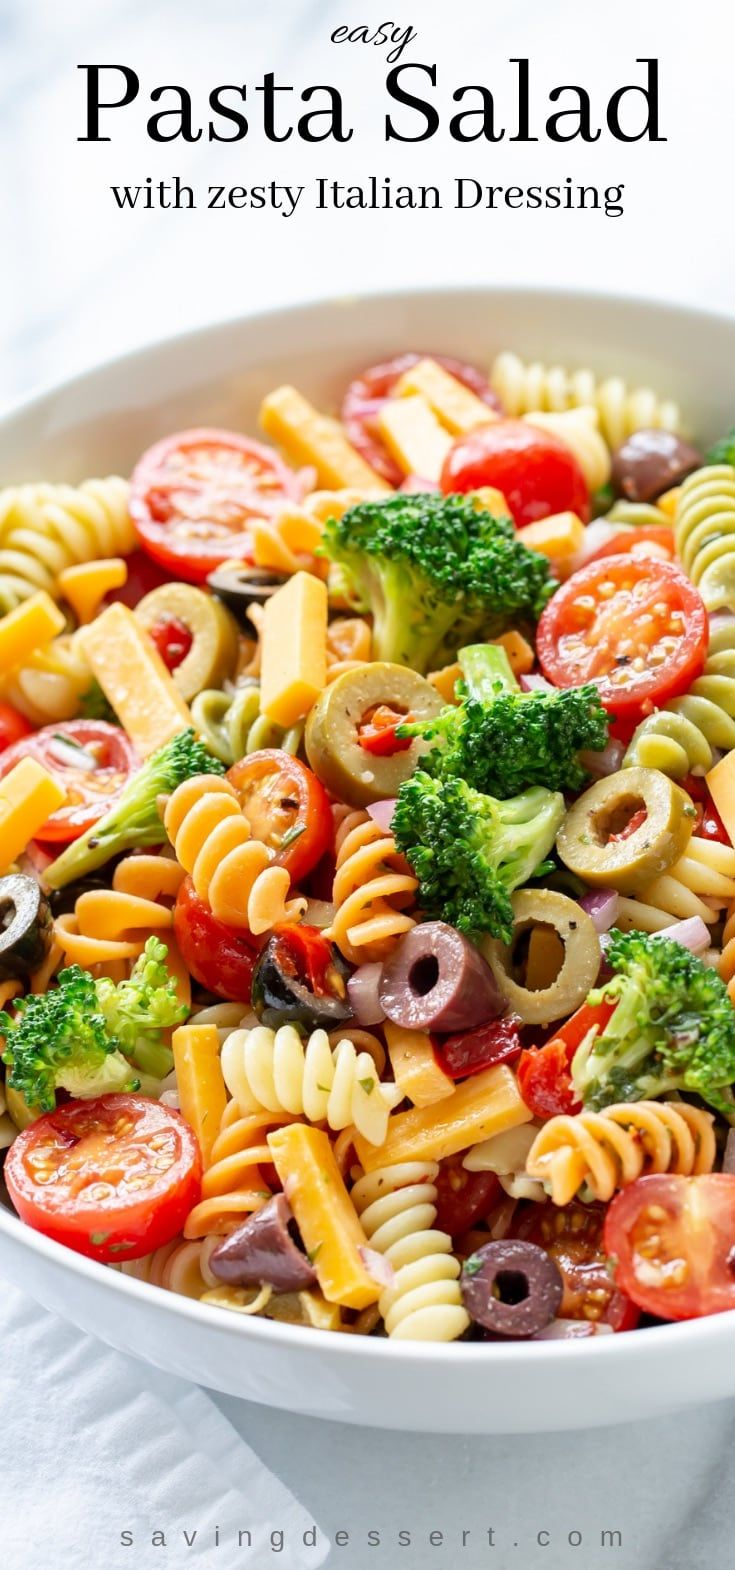 Easy Pasta Salad images